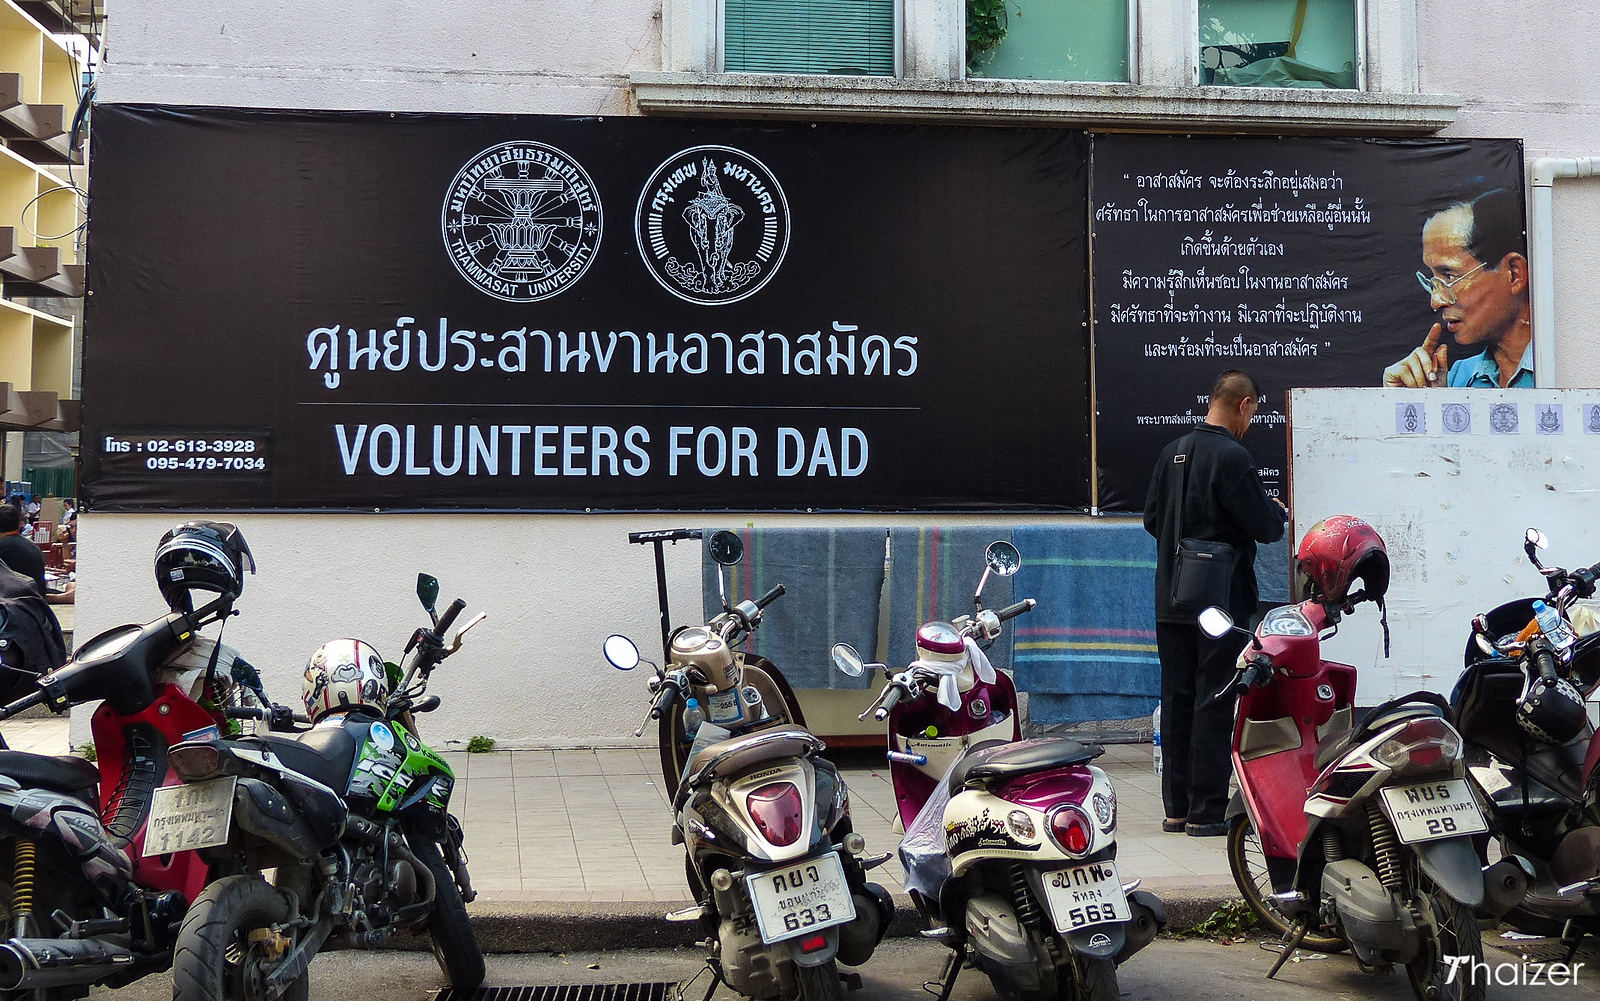 Bangkok Volunteers for Dad